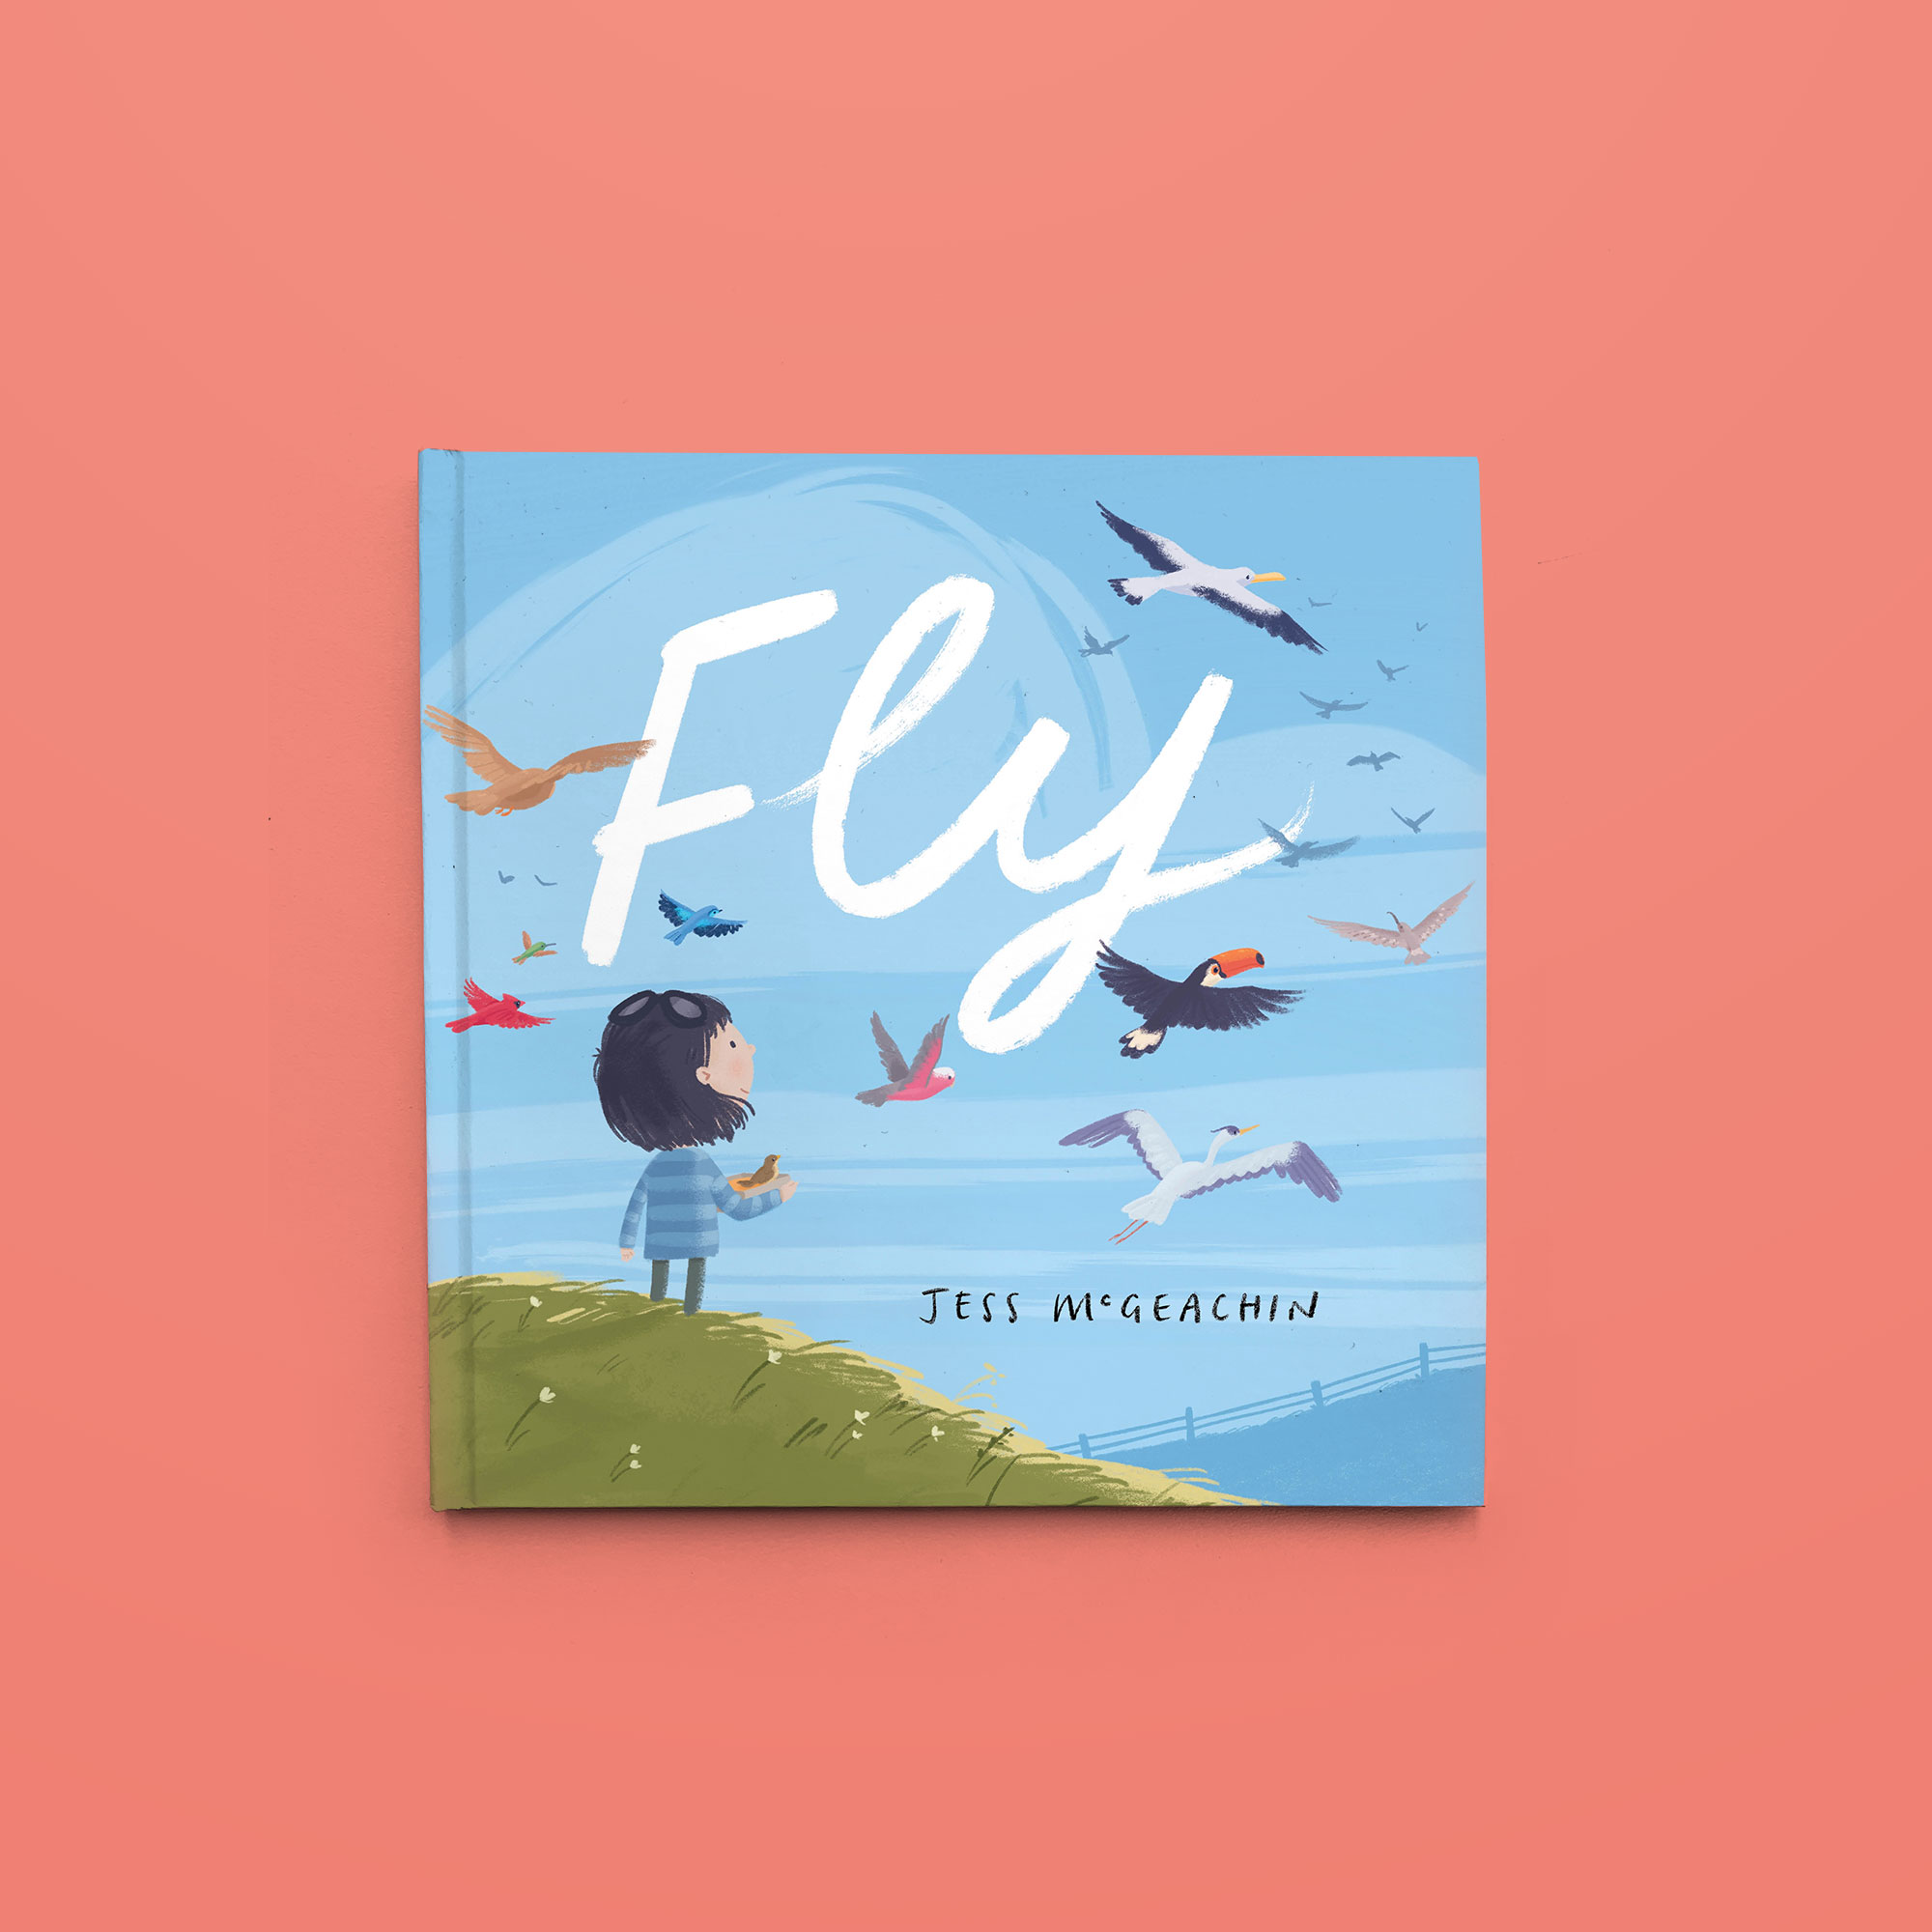 Fly by Jess McGeachin